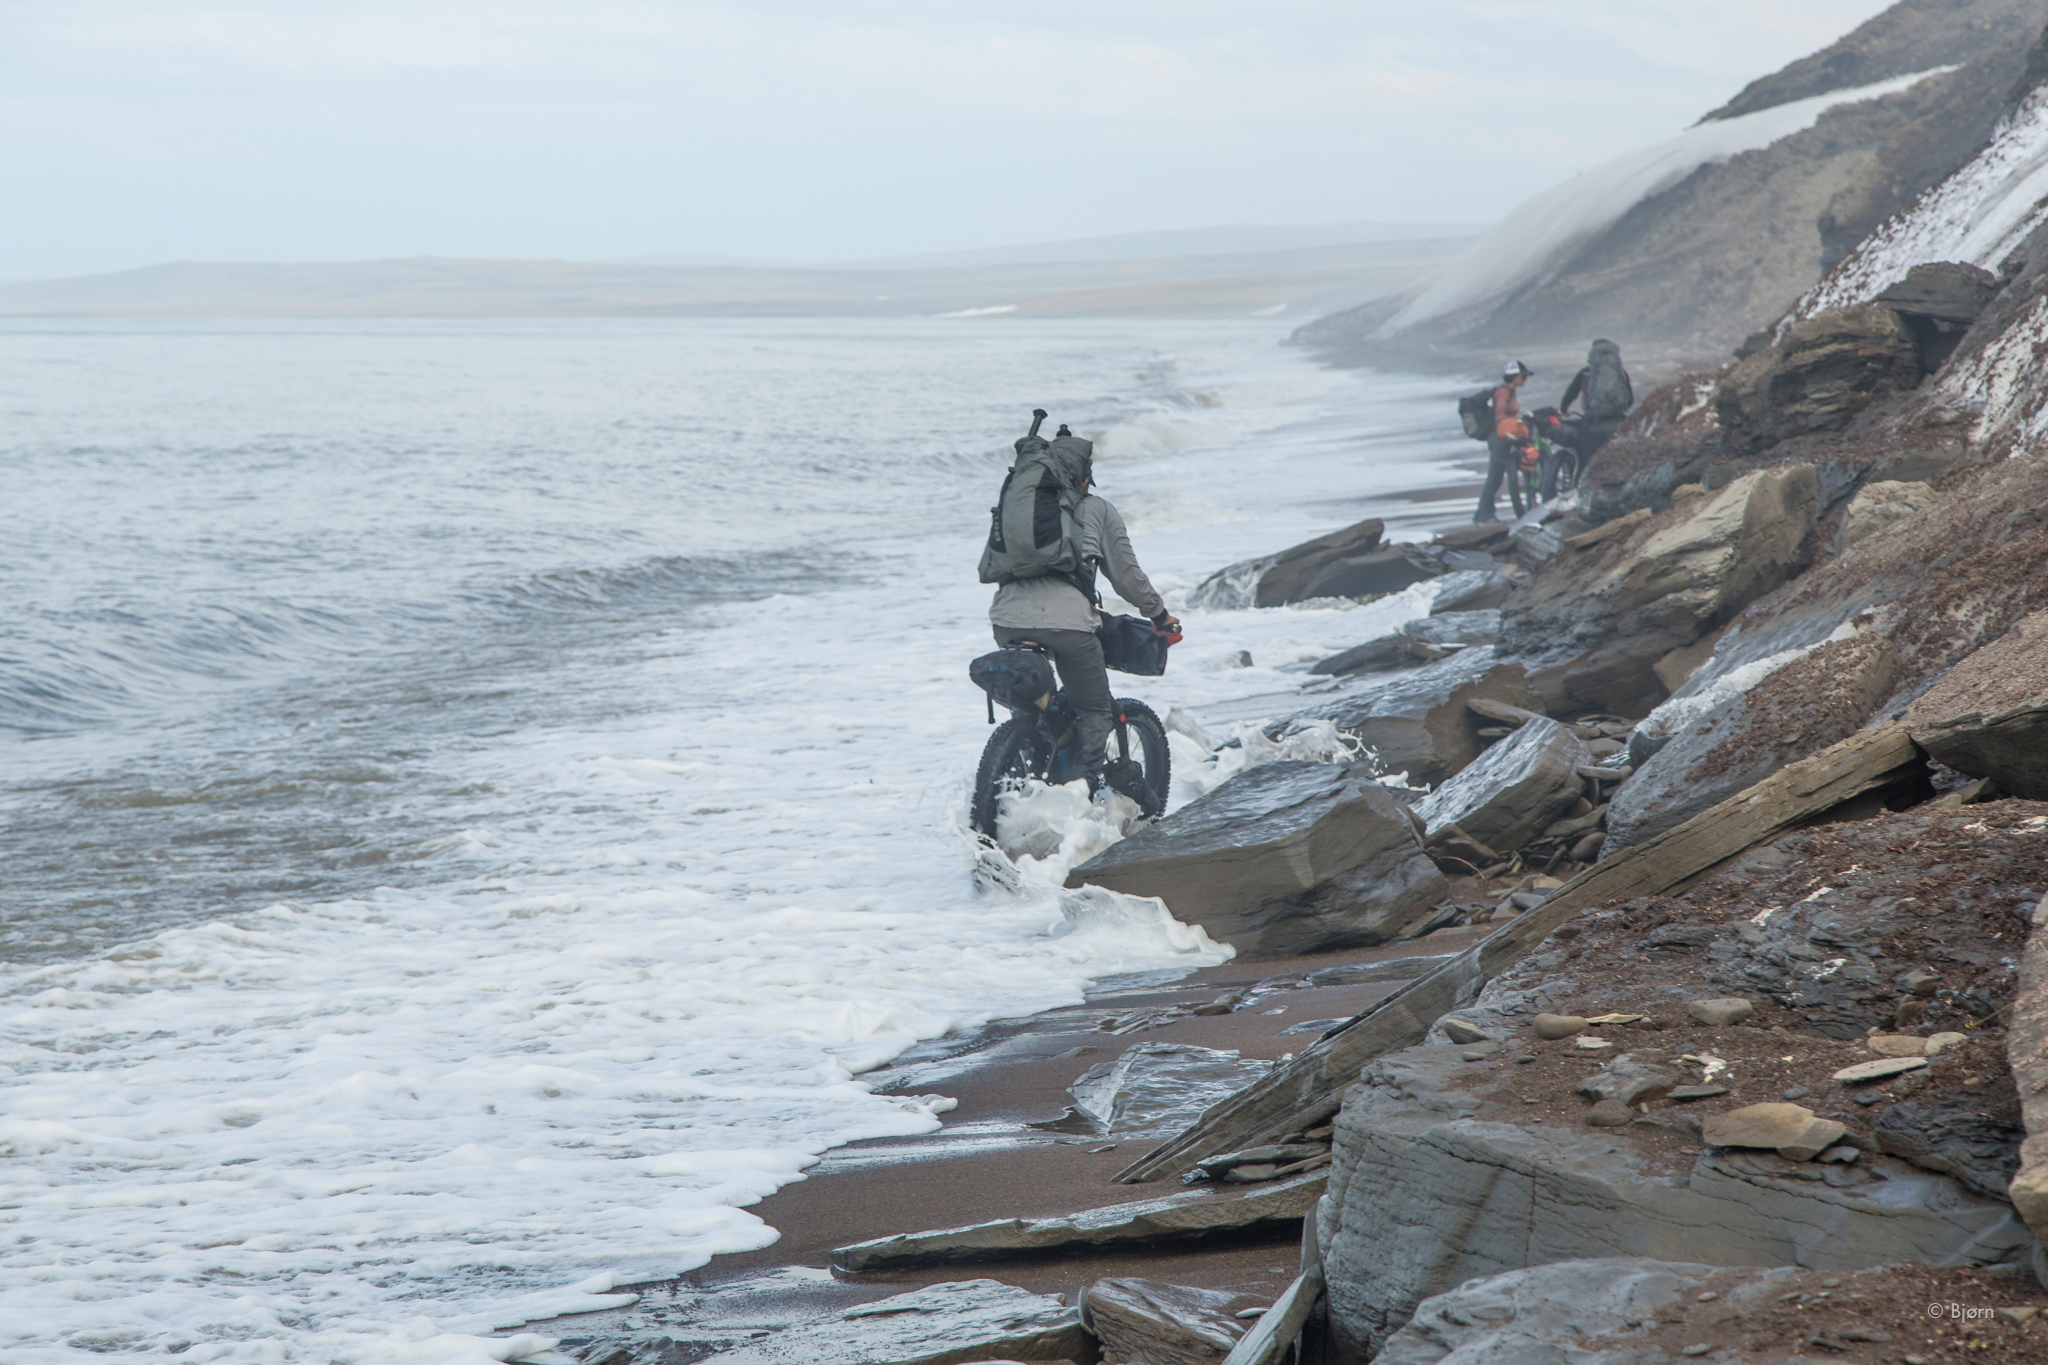 Fat-biking through fierce winds, from Point Hope to Utqiagvik